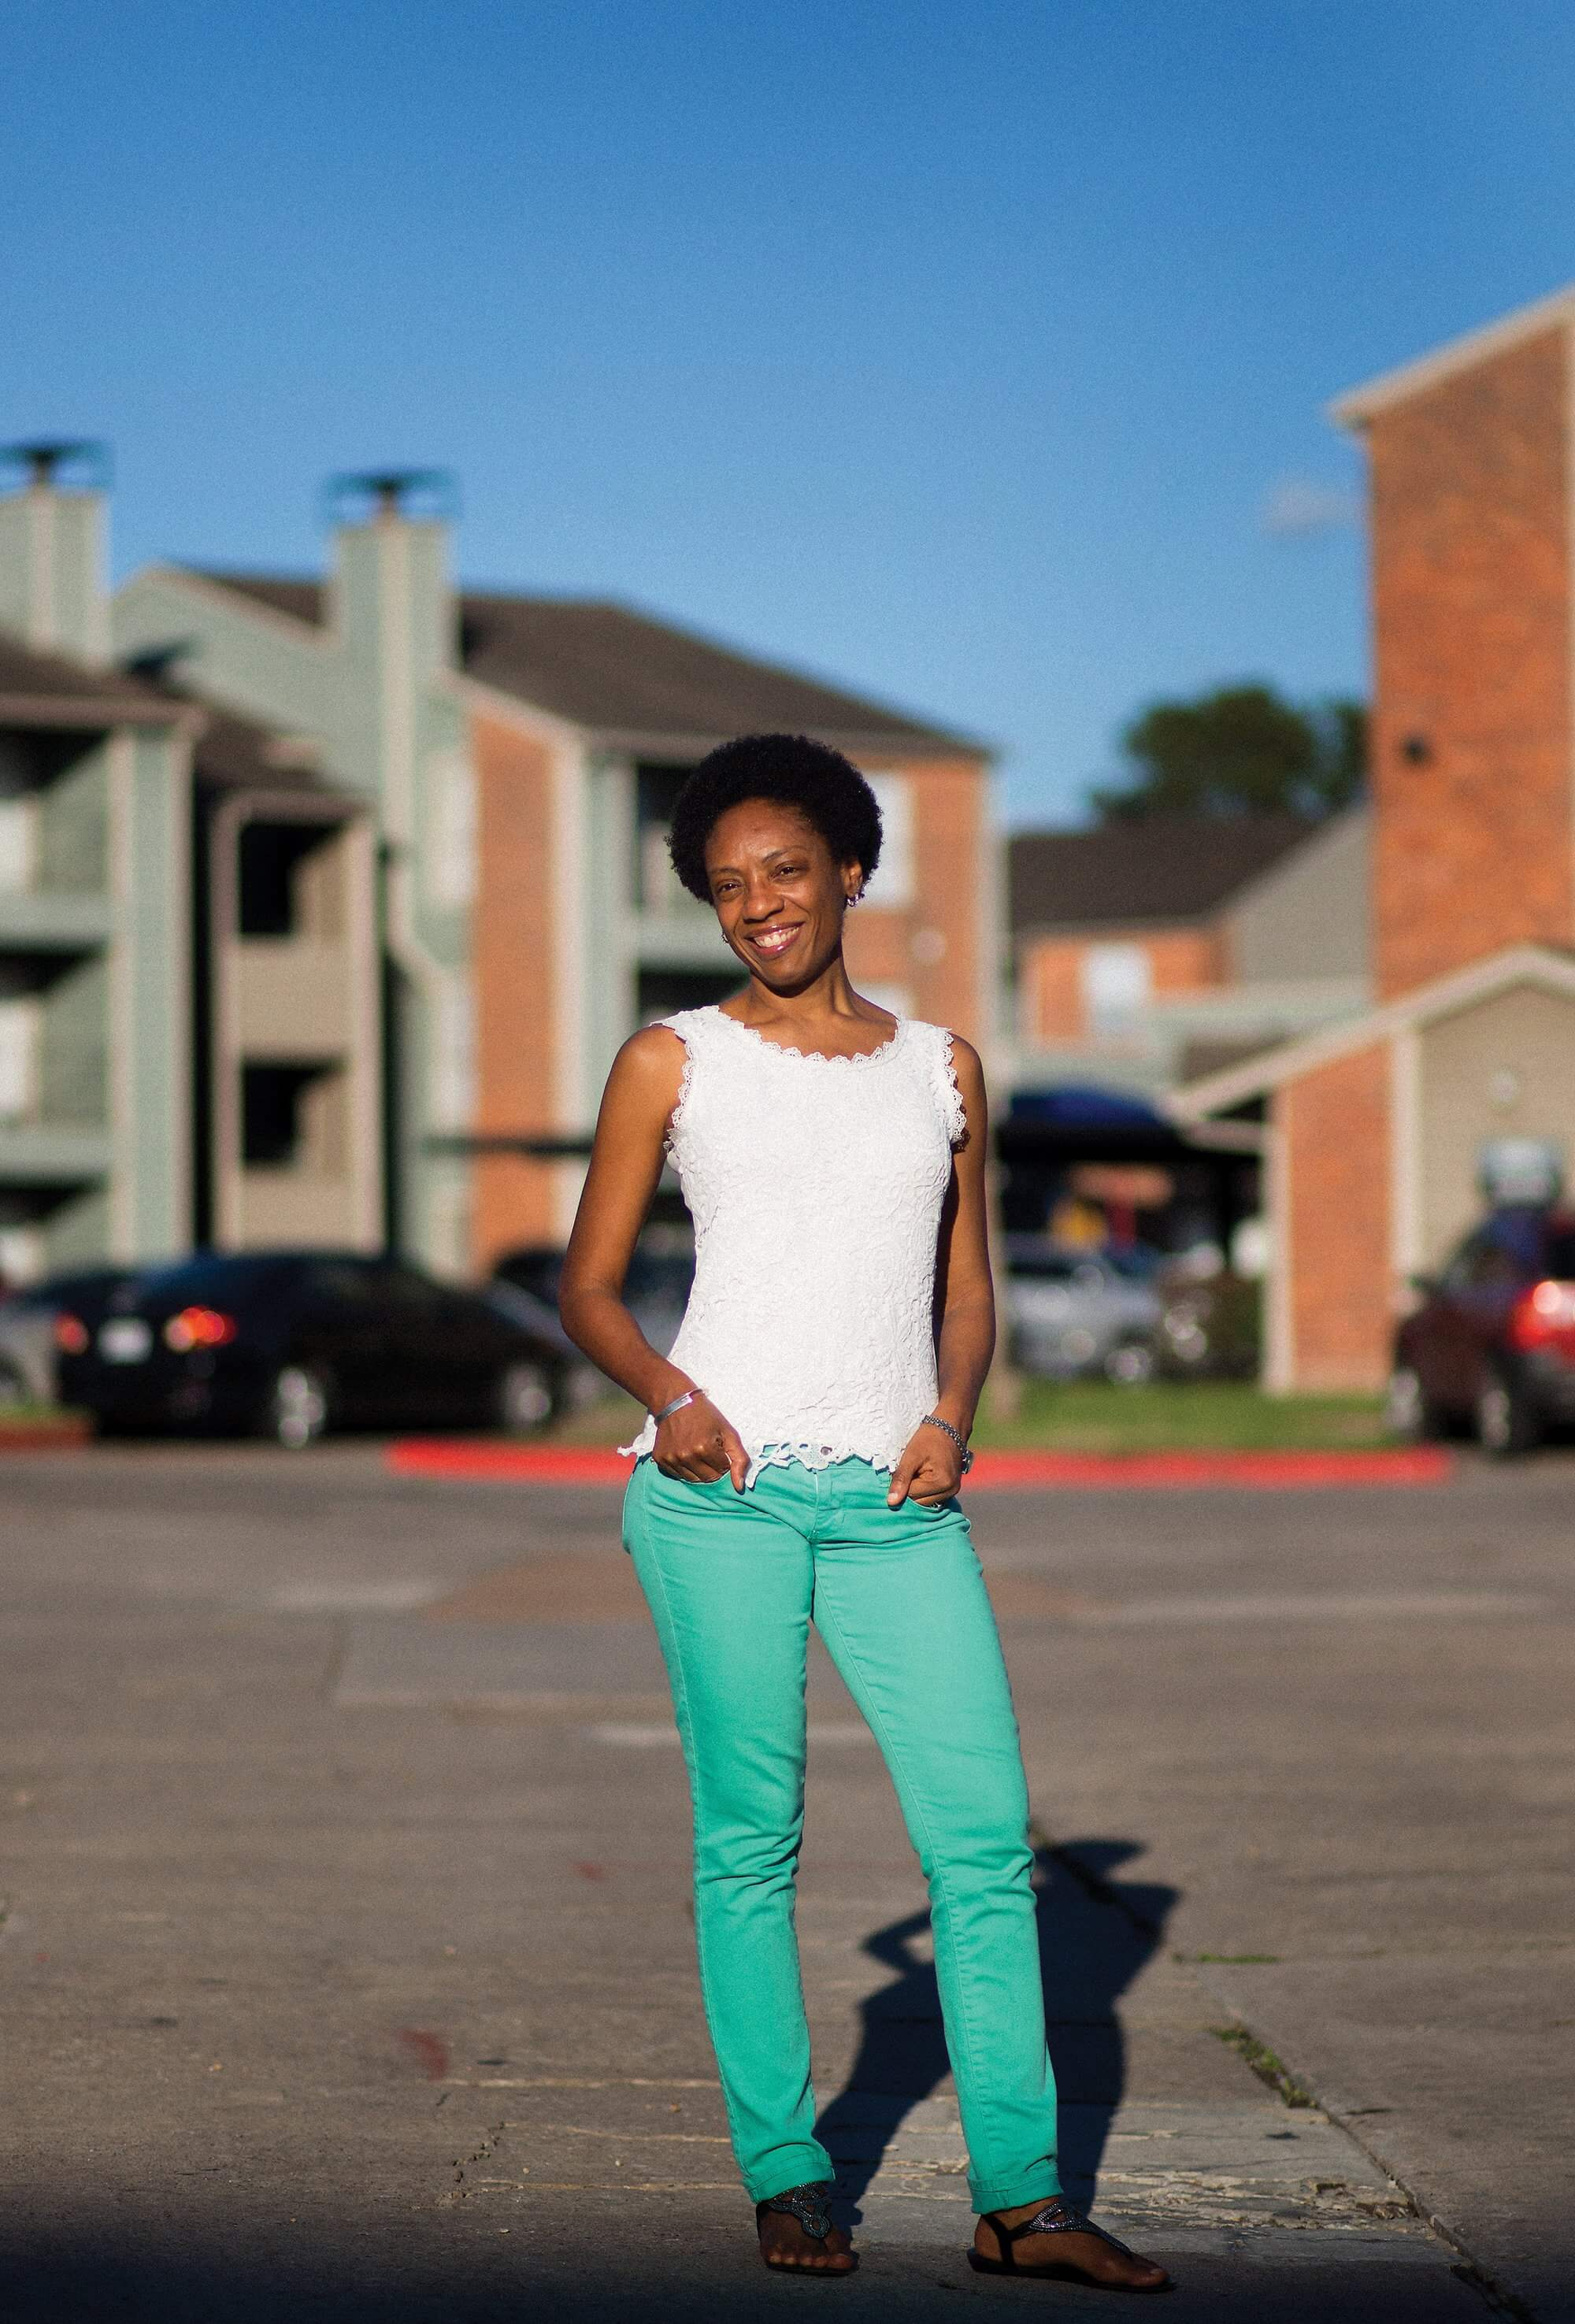 Shasta Theodore, Ph.D., second-year student at McGovern Medical School at The University of Texas Health Science Center at Houston.